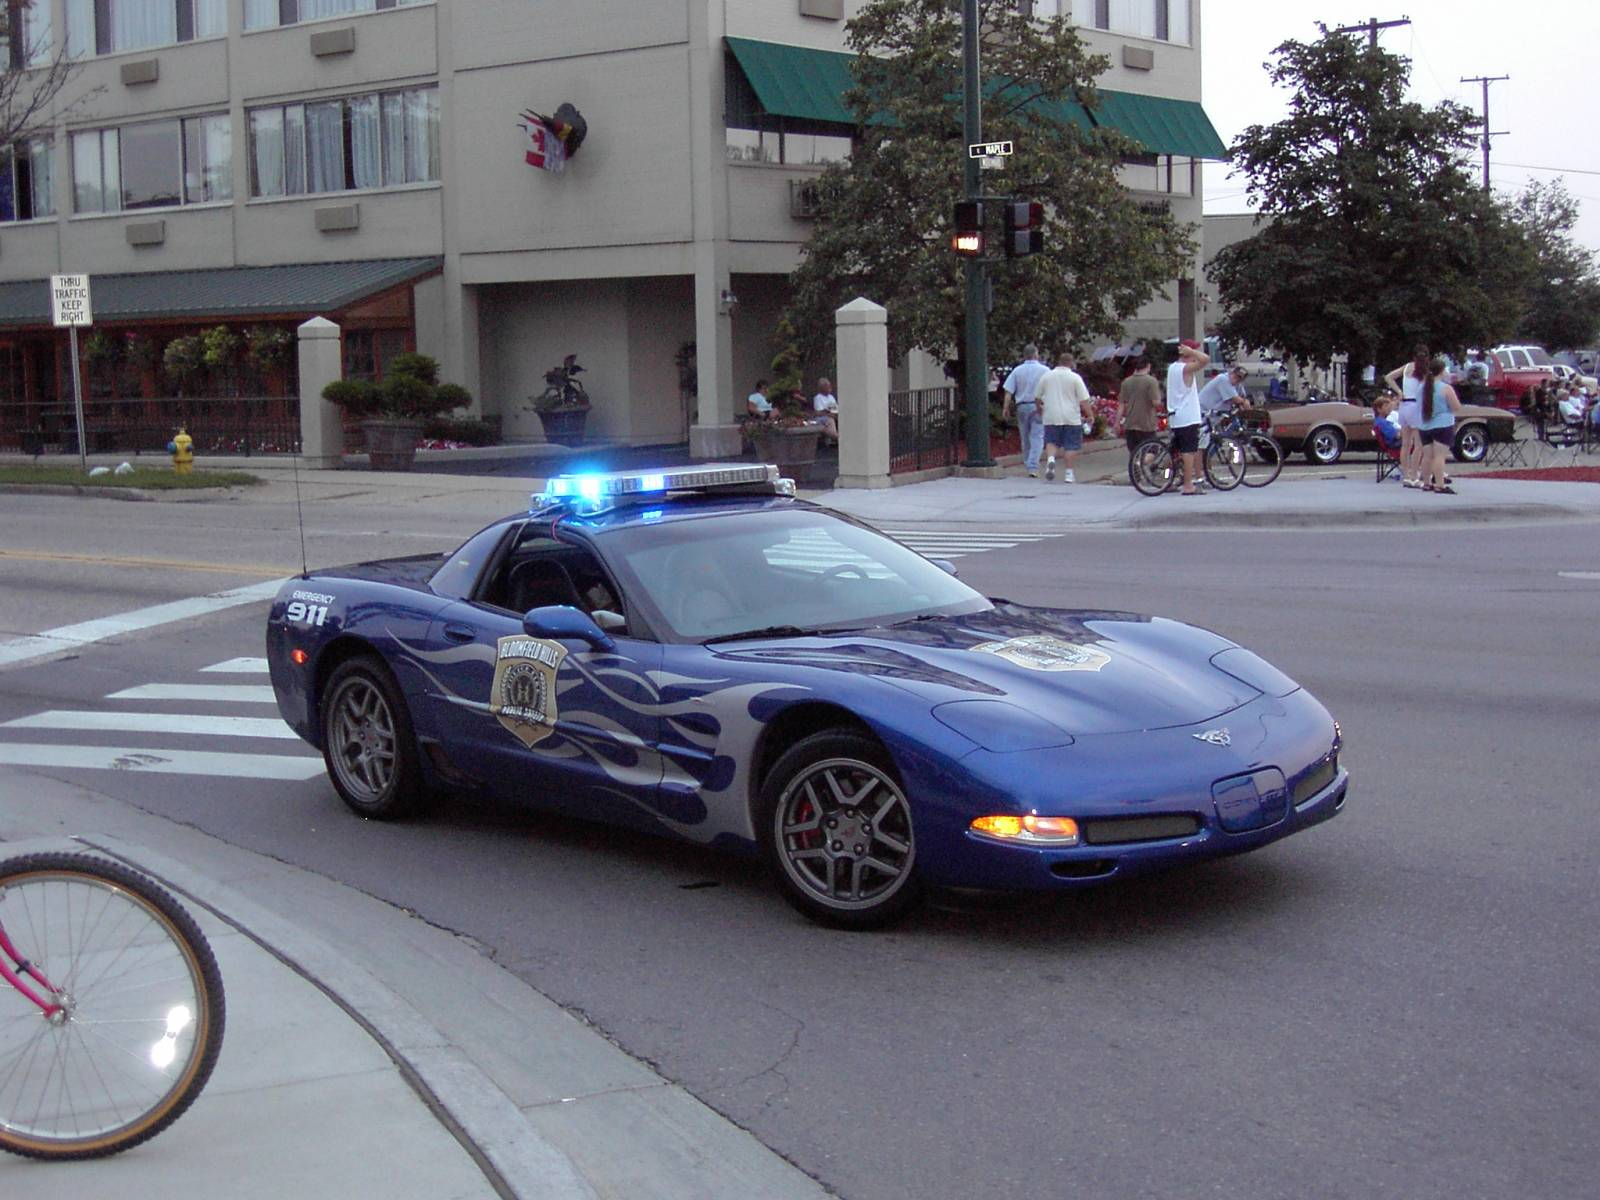 Corvette Police Car: Best Cars For You